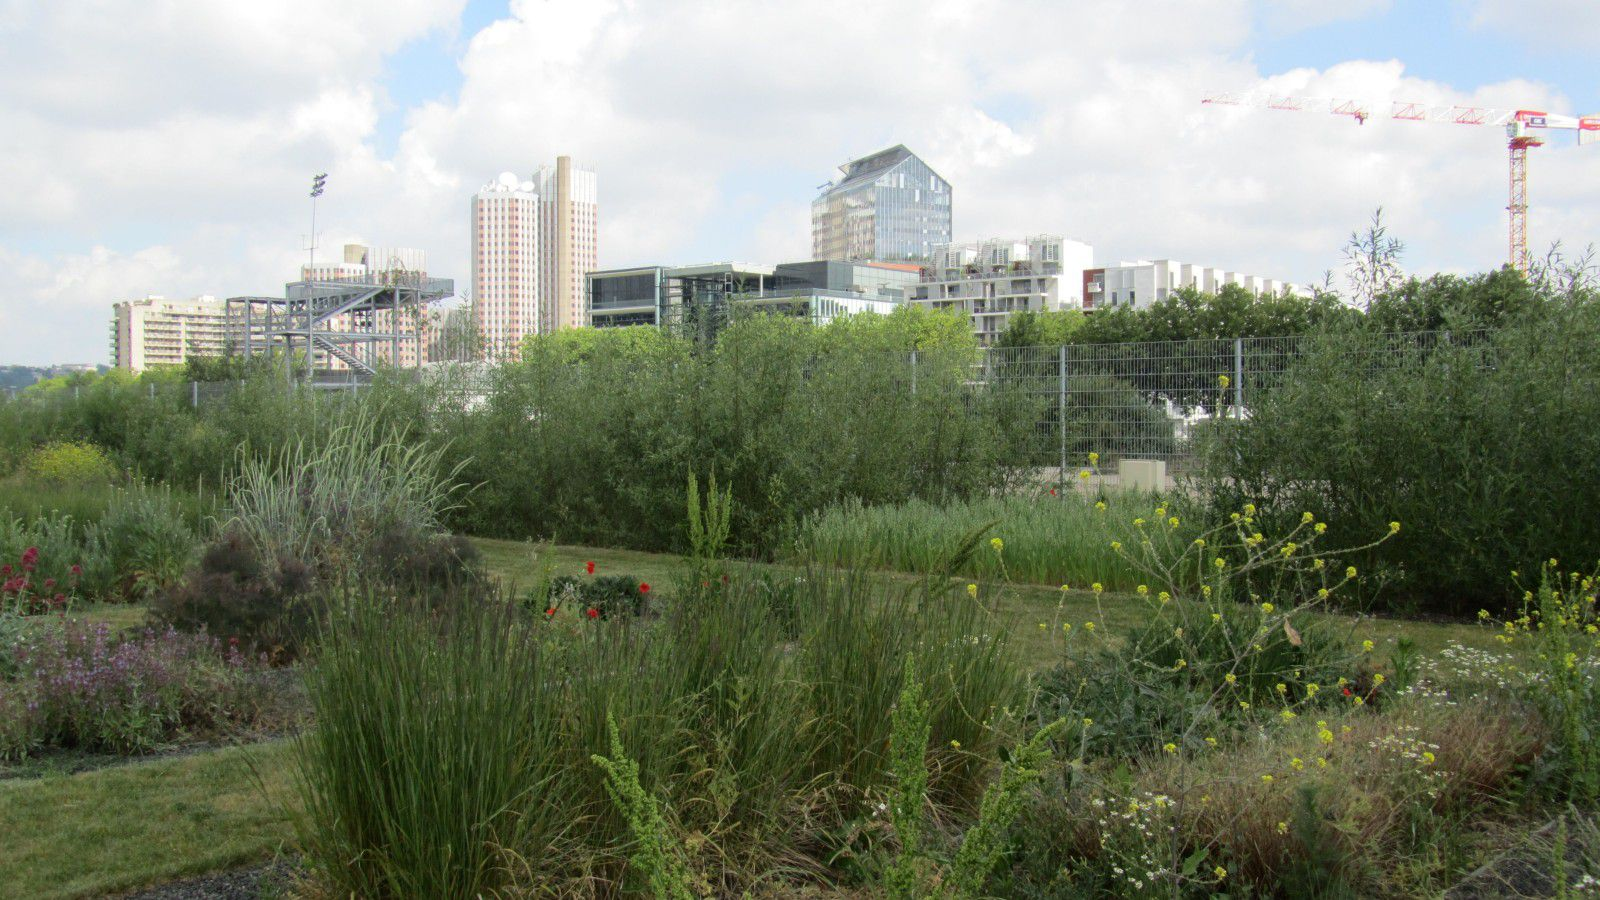 http://idata.over-blog.com/0/32/10/53/villes-geo-urbaine/Jardin-Ile-Seguin.jpg